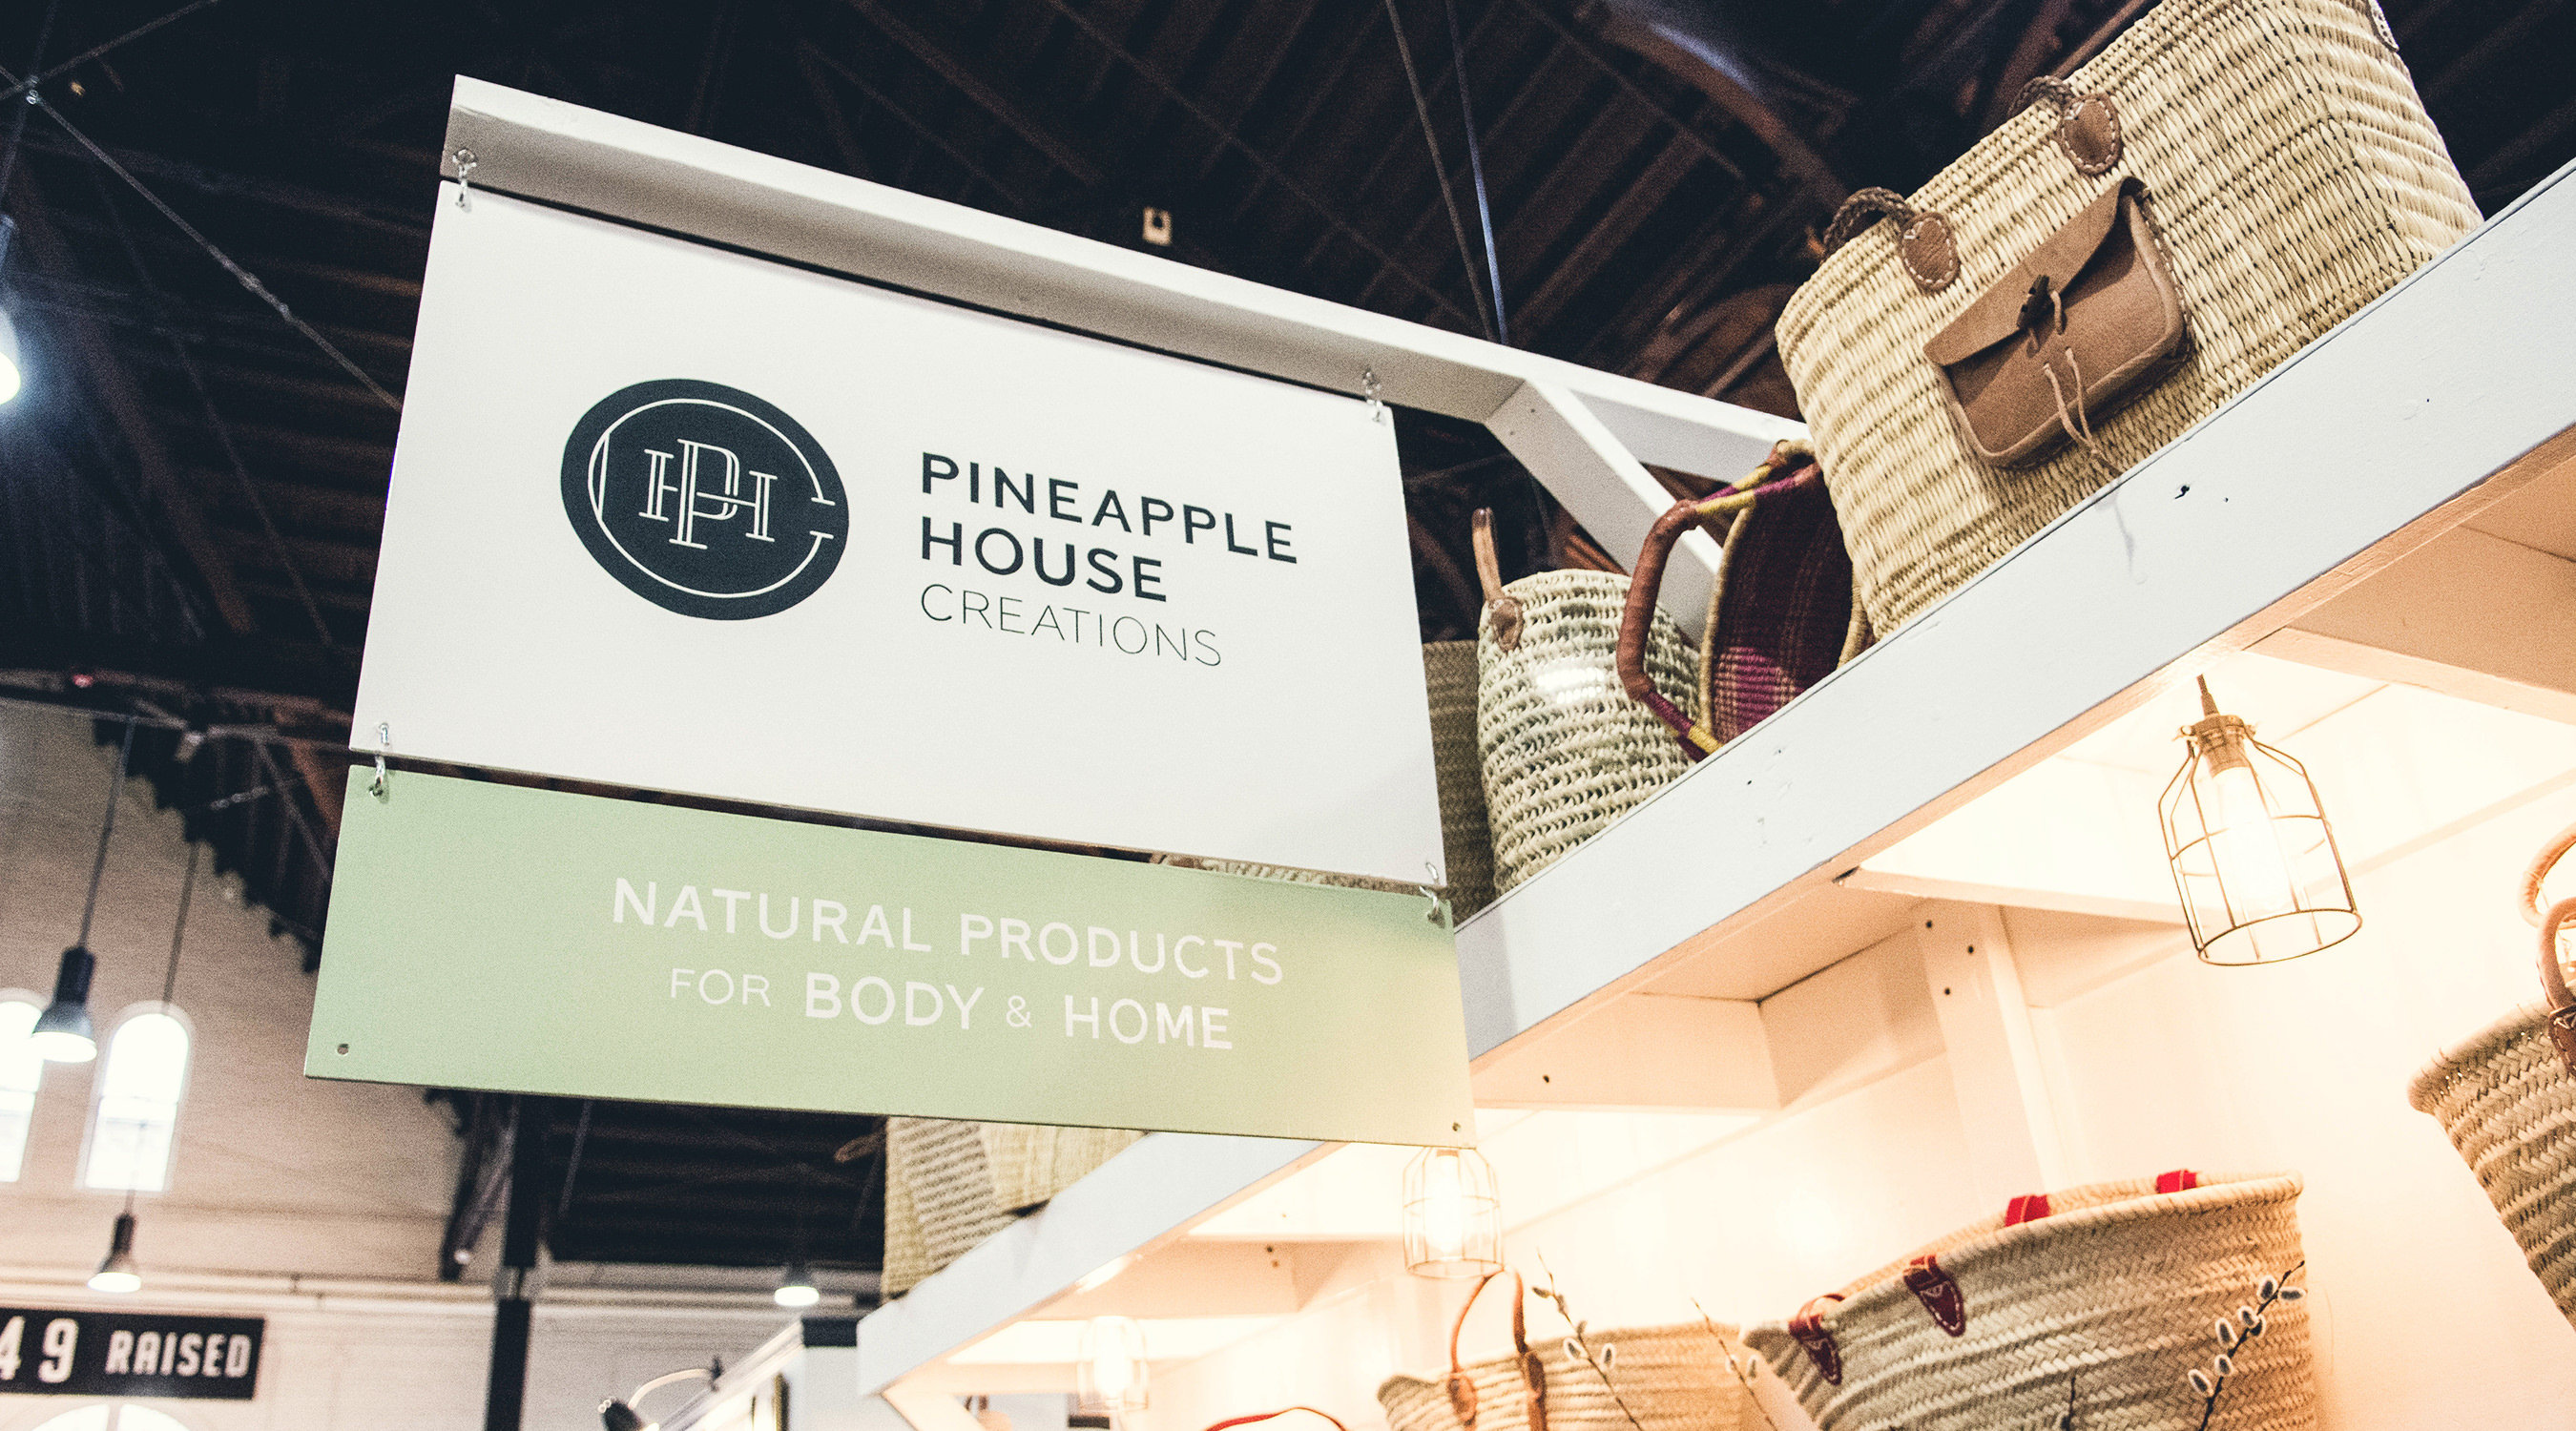 Pineapple House Creations branding by The Curio Collective